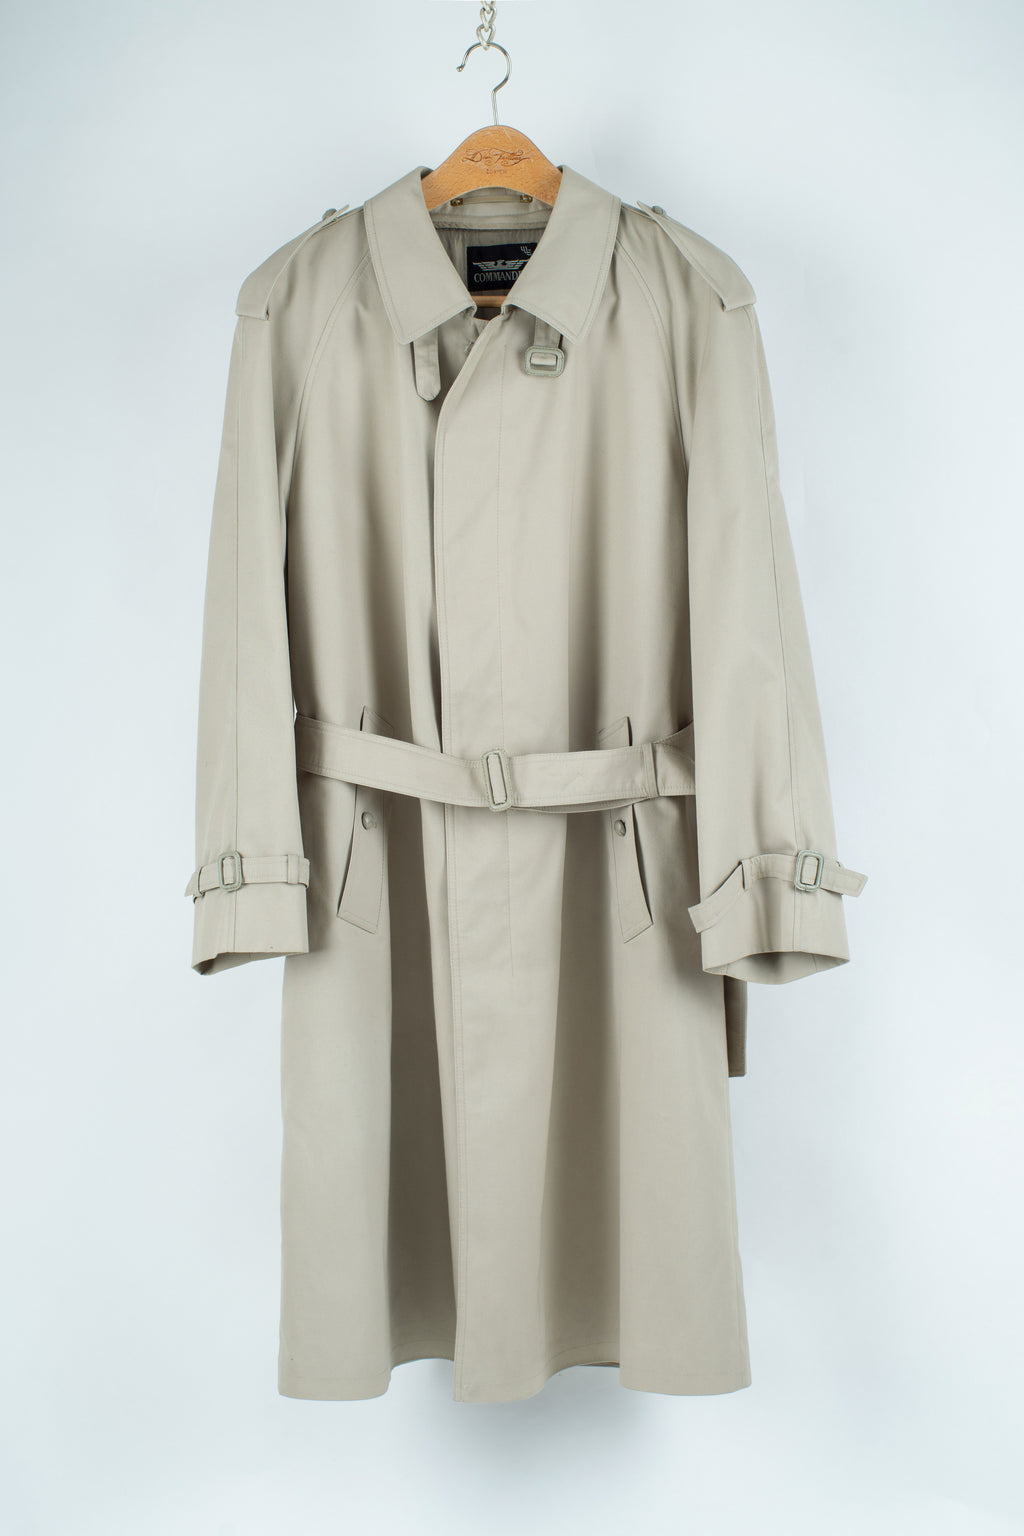 Vintage Gabardine Trench Coat with Wool Zip-Out Liner, USA 44S